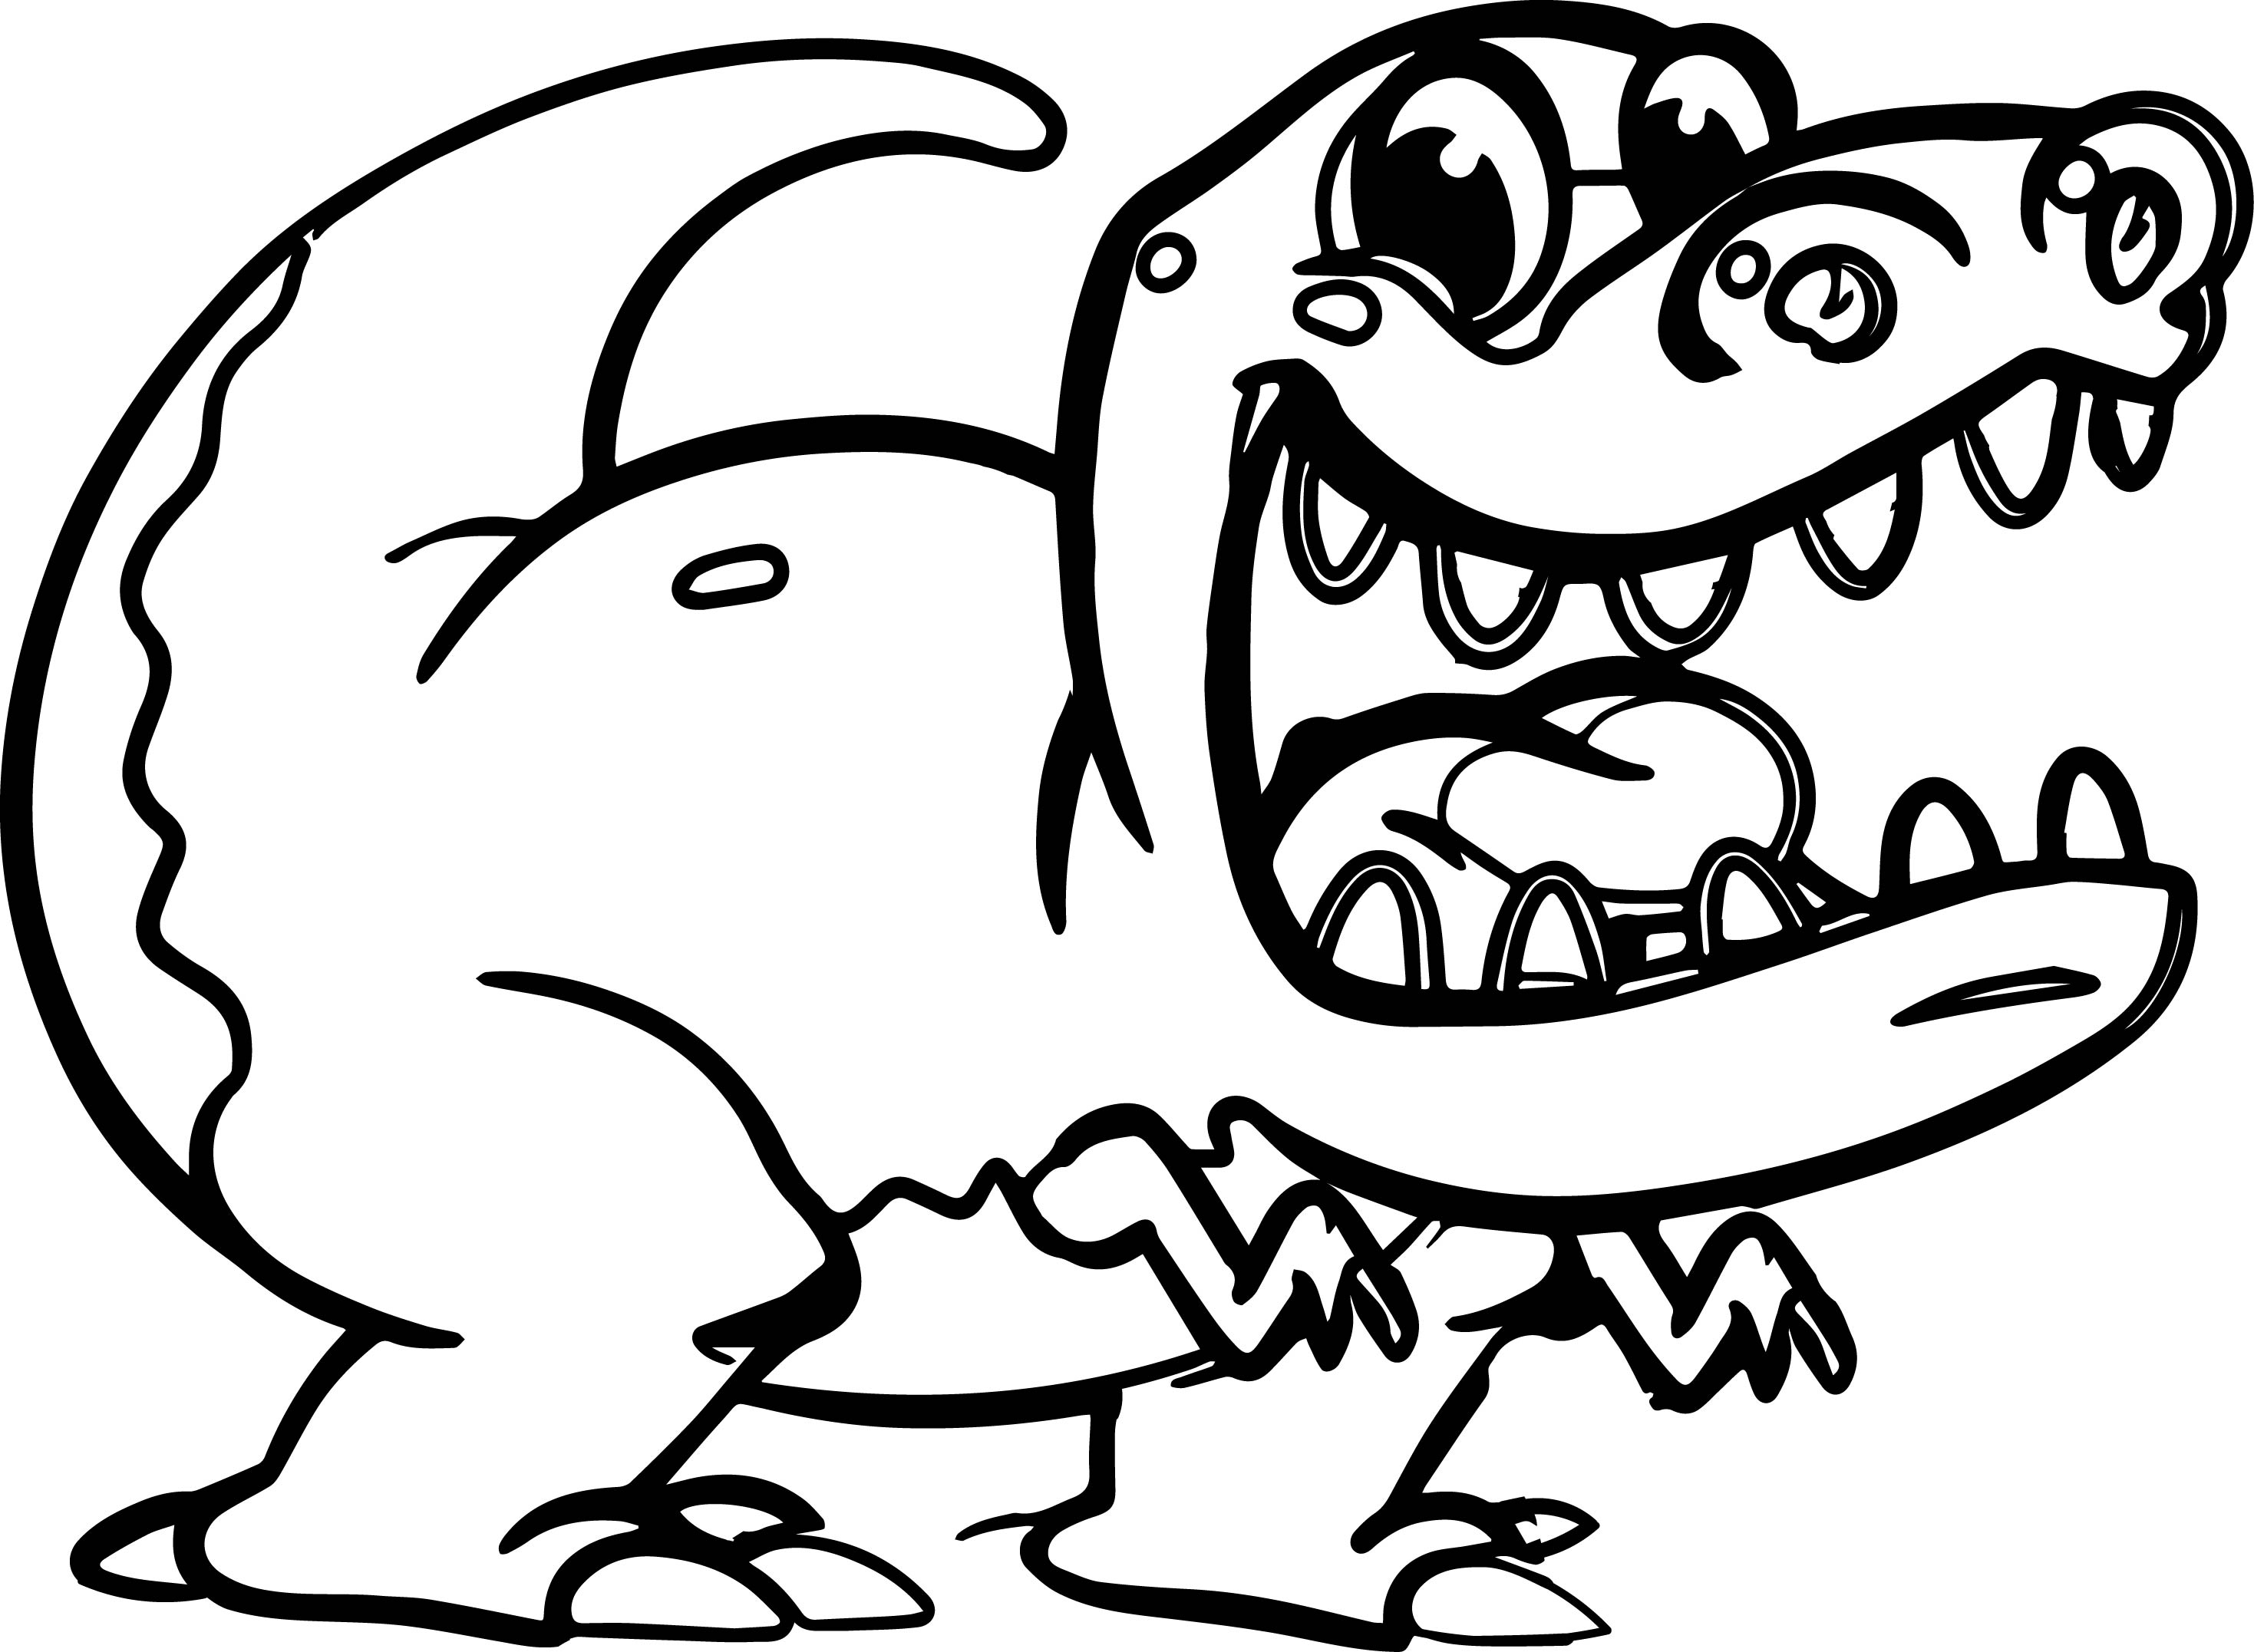 dinosaur colouring pictures to print printable dinosaur coloring pages for kids cool2bkids pictures dinosaur to colouring print